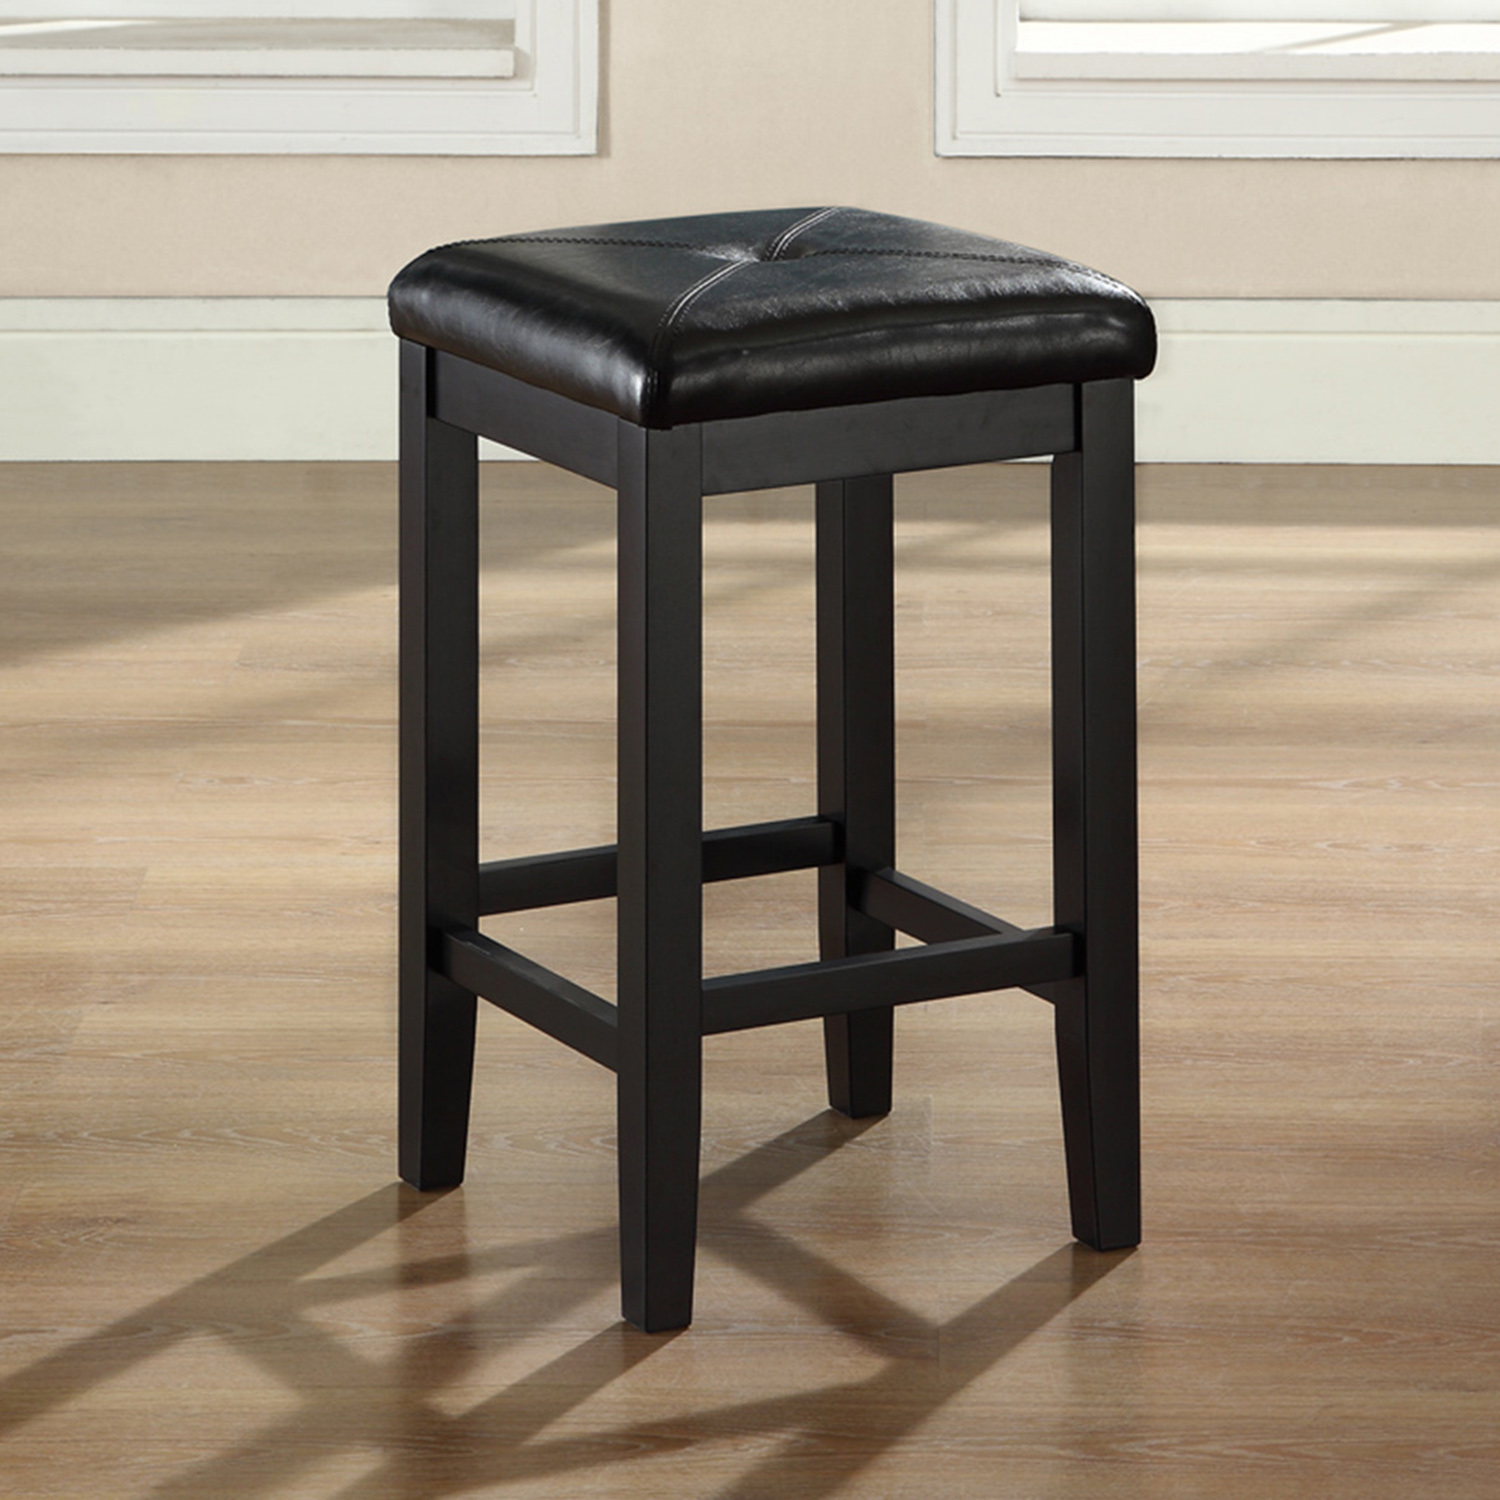 Upholstered Square Seat Bar Stool with 24 Inch Seat Height - Black (Set of 2) - CROS-CF500524-BK